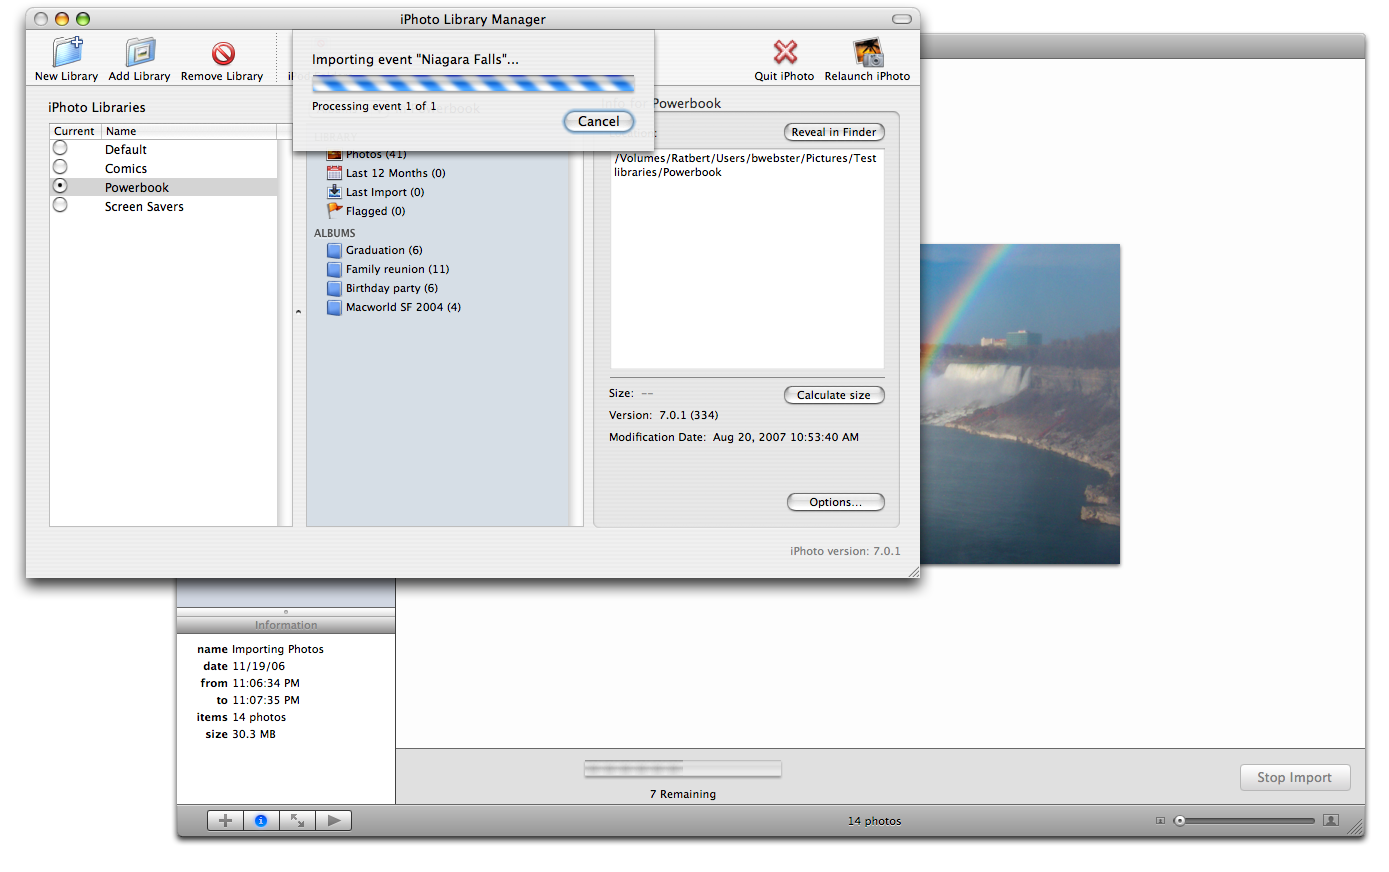 Iphoto library manager coupon code 2018